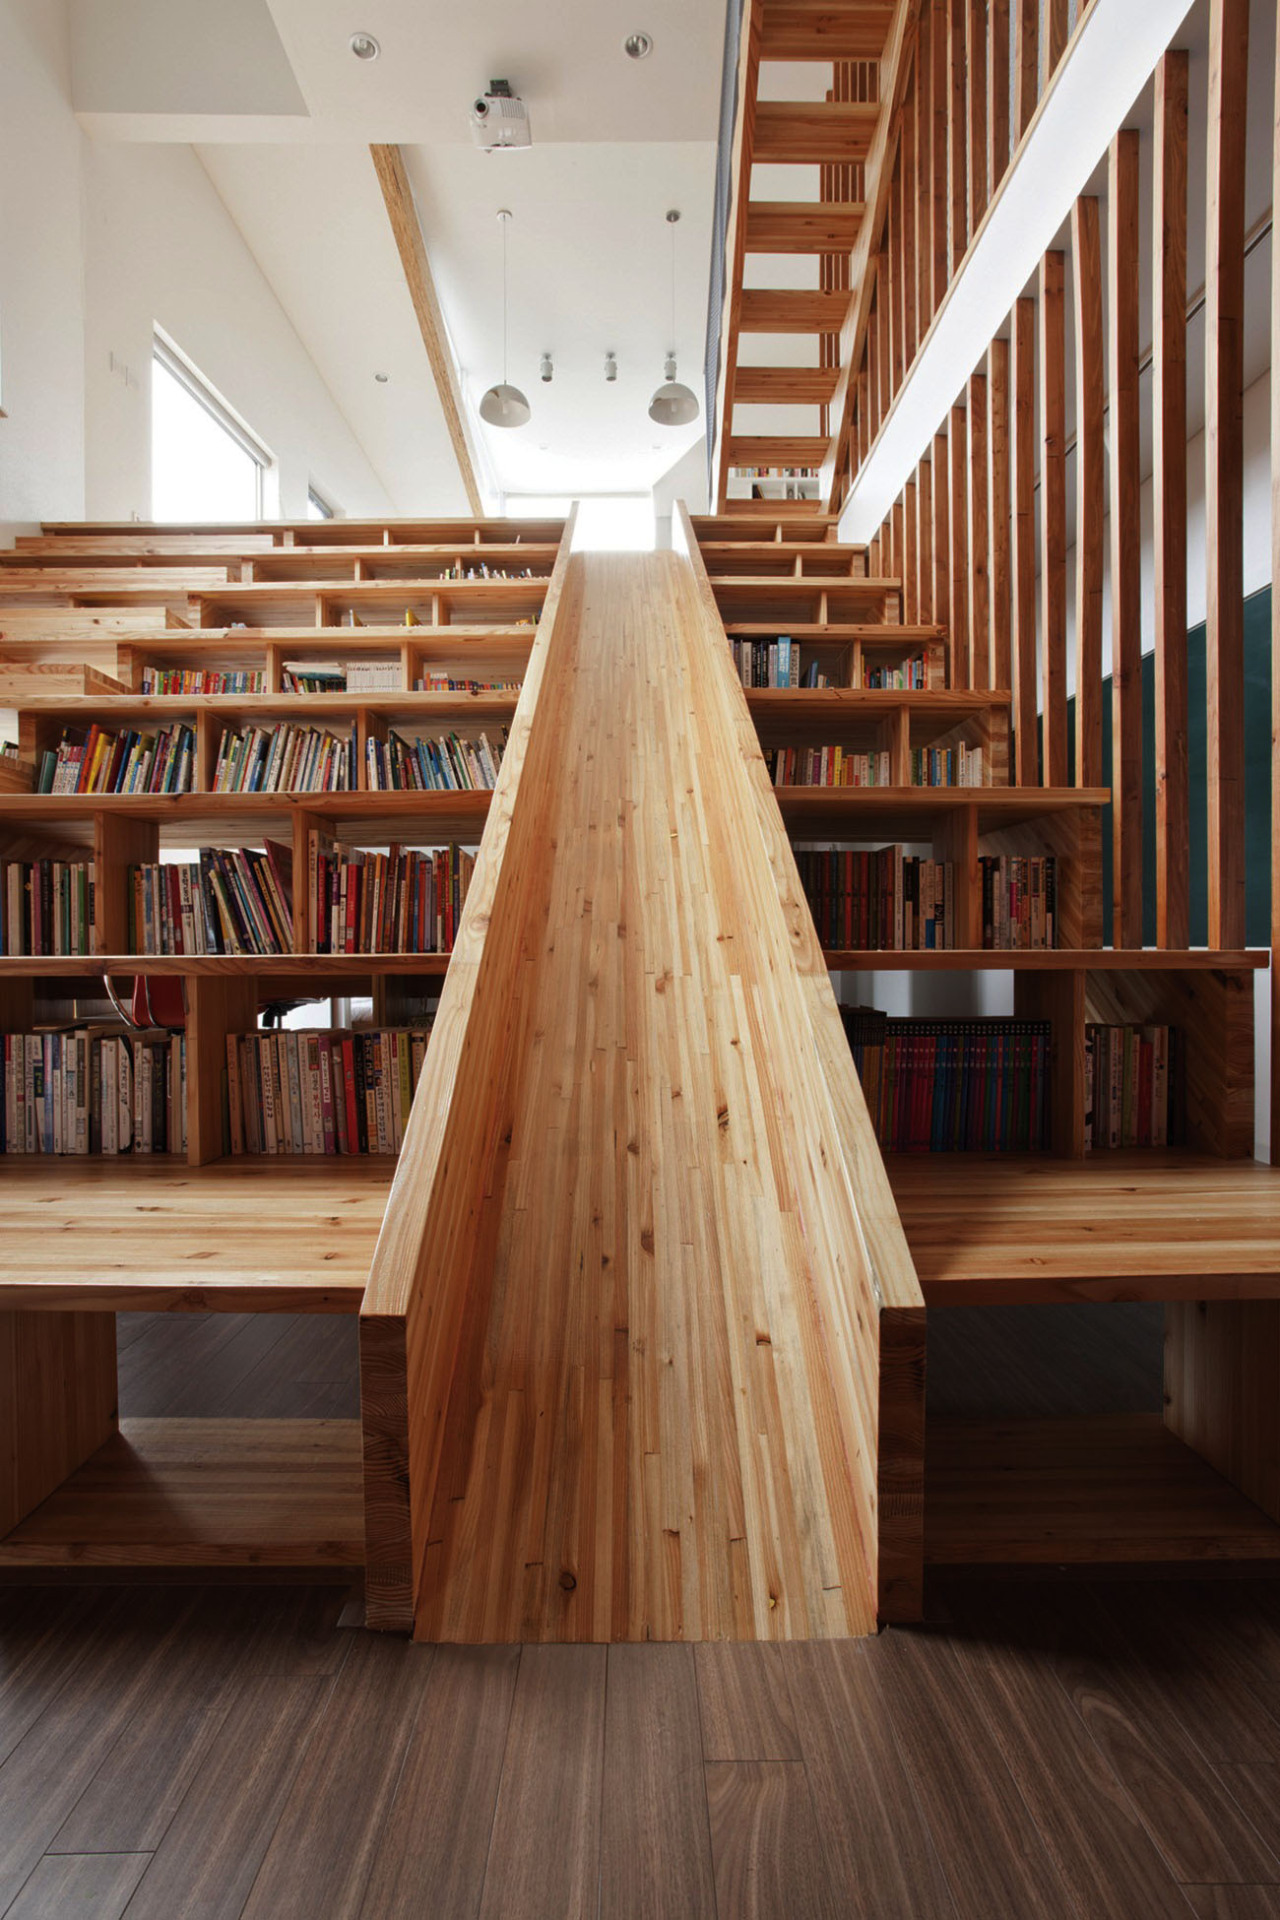 bookshelfporn:  A Library Slide We love this wooden slide that is slotted into a combined staircase and bookshelf of a house in Chungcheongbuk-do, South Korea, Designed by Moon Hoon. Submitted by Bookshelf Porn reader Jesse Richardson via Colossal.